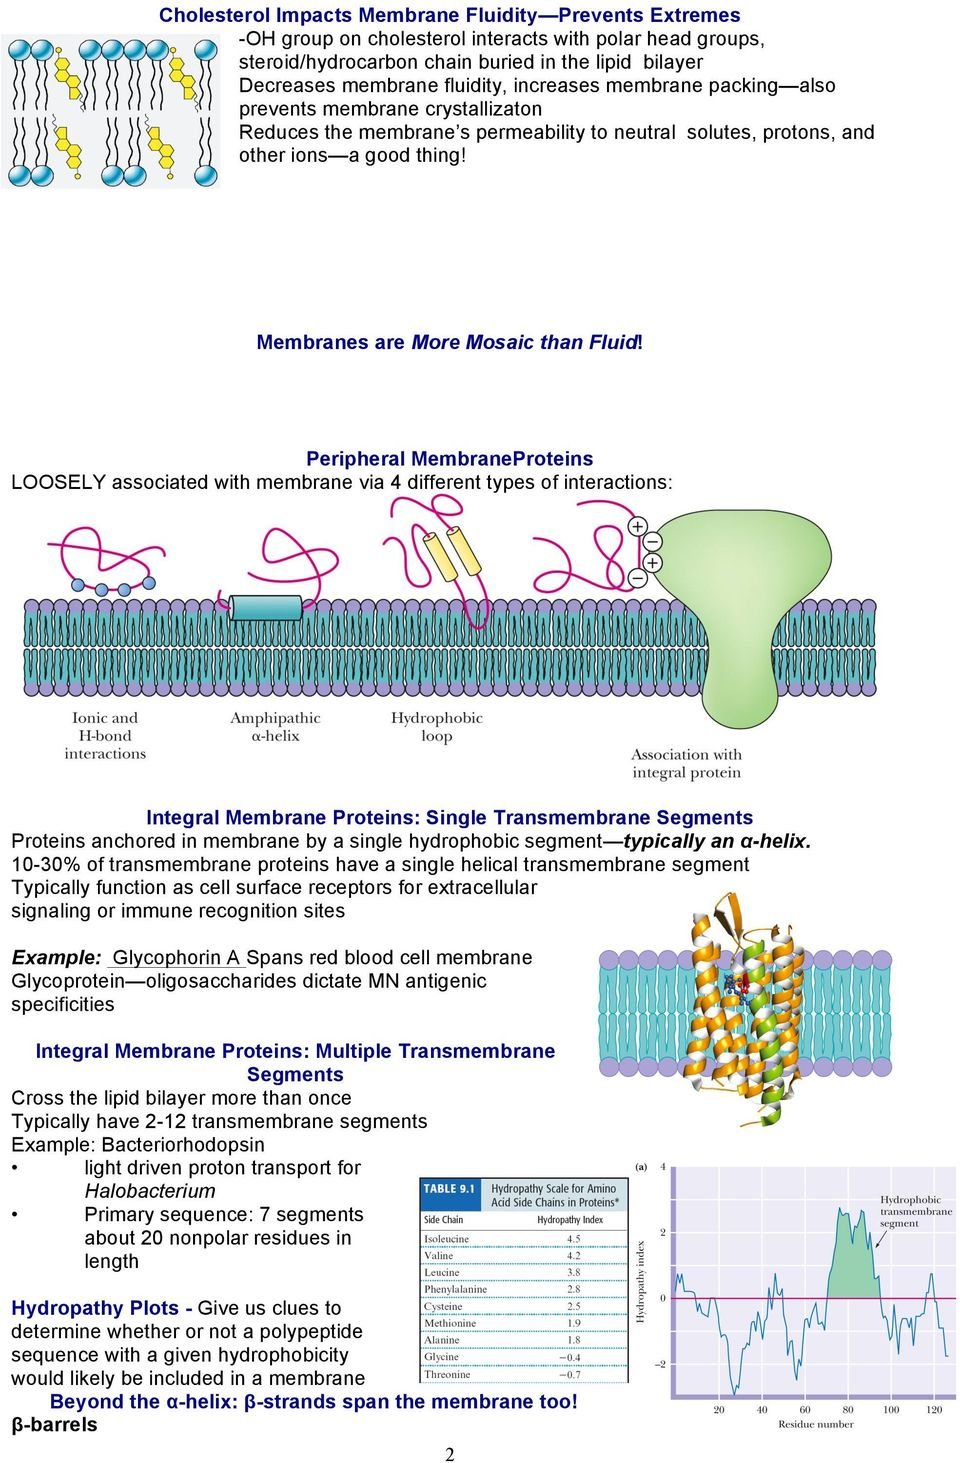 Peripheral MembraneProteins LOOSELY associated with membrane via 4 different types of interactions: Integral Membrane Proteins: Single Transmembrane Segments Proteins anchored in membrane by a single